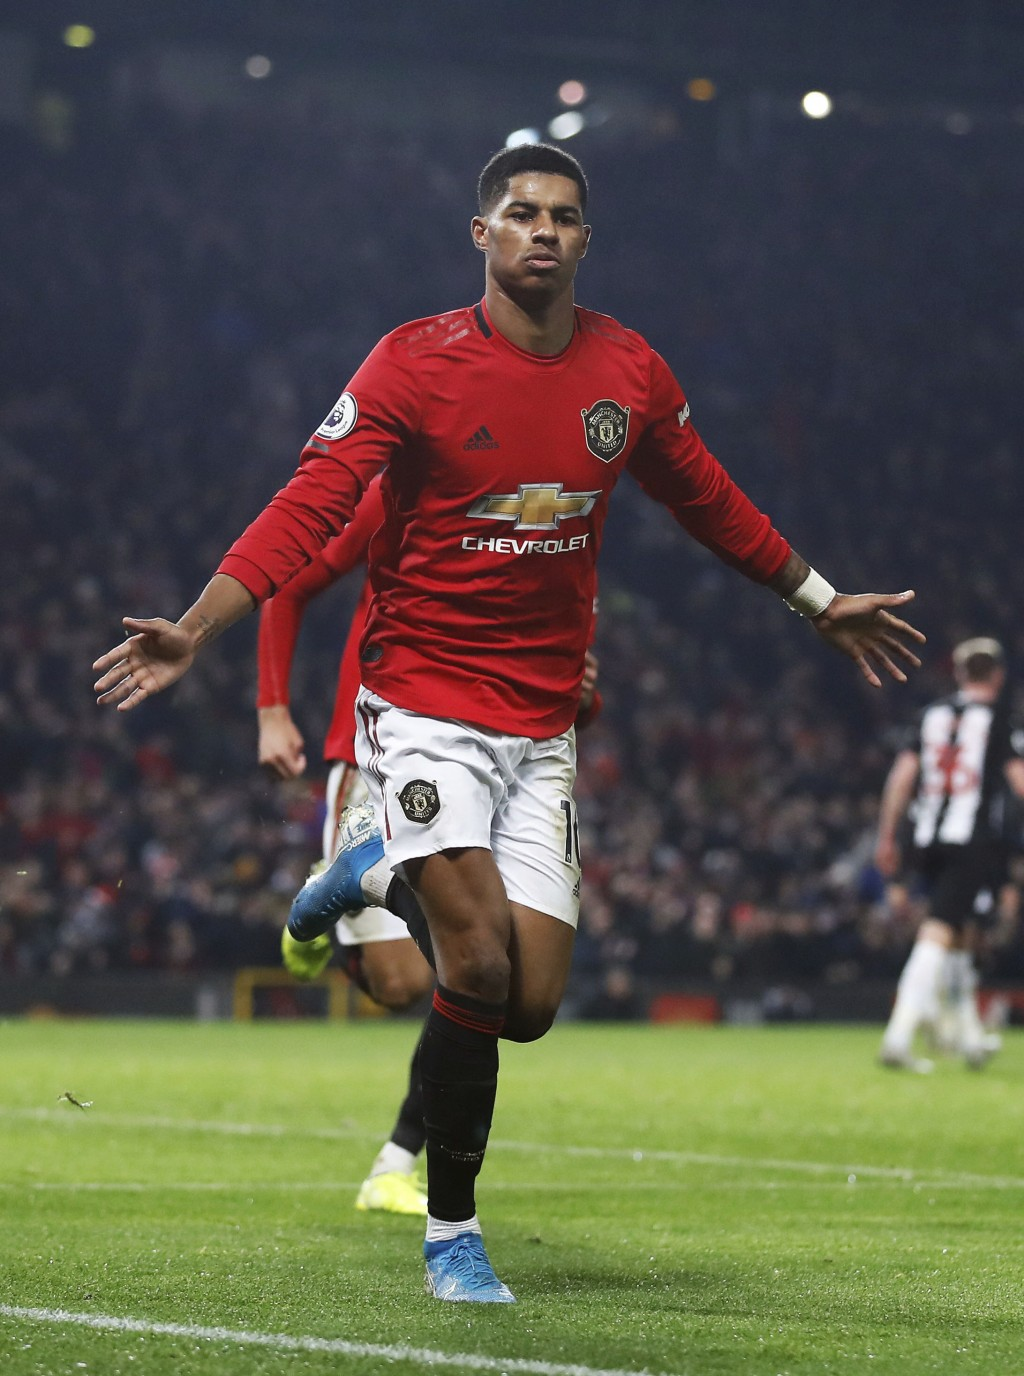 Manchester United's Marcus Rashford celebrates scoring his side's third goal of the game during their English Premier League soccer match against Newc...